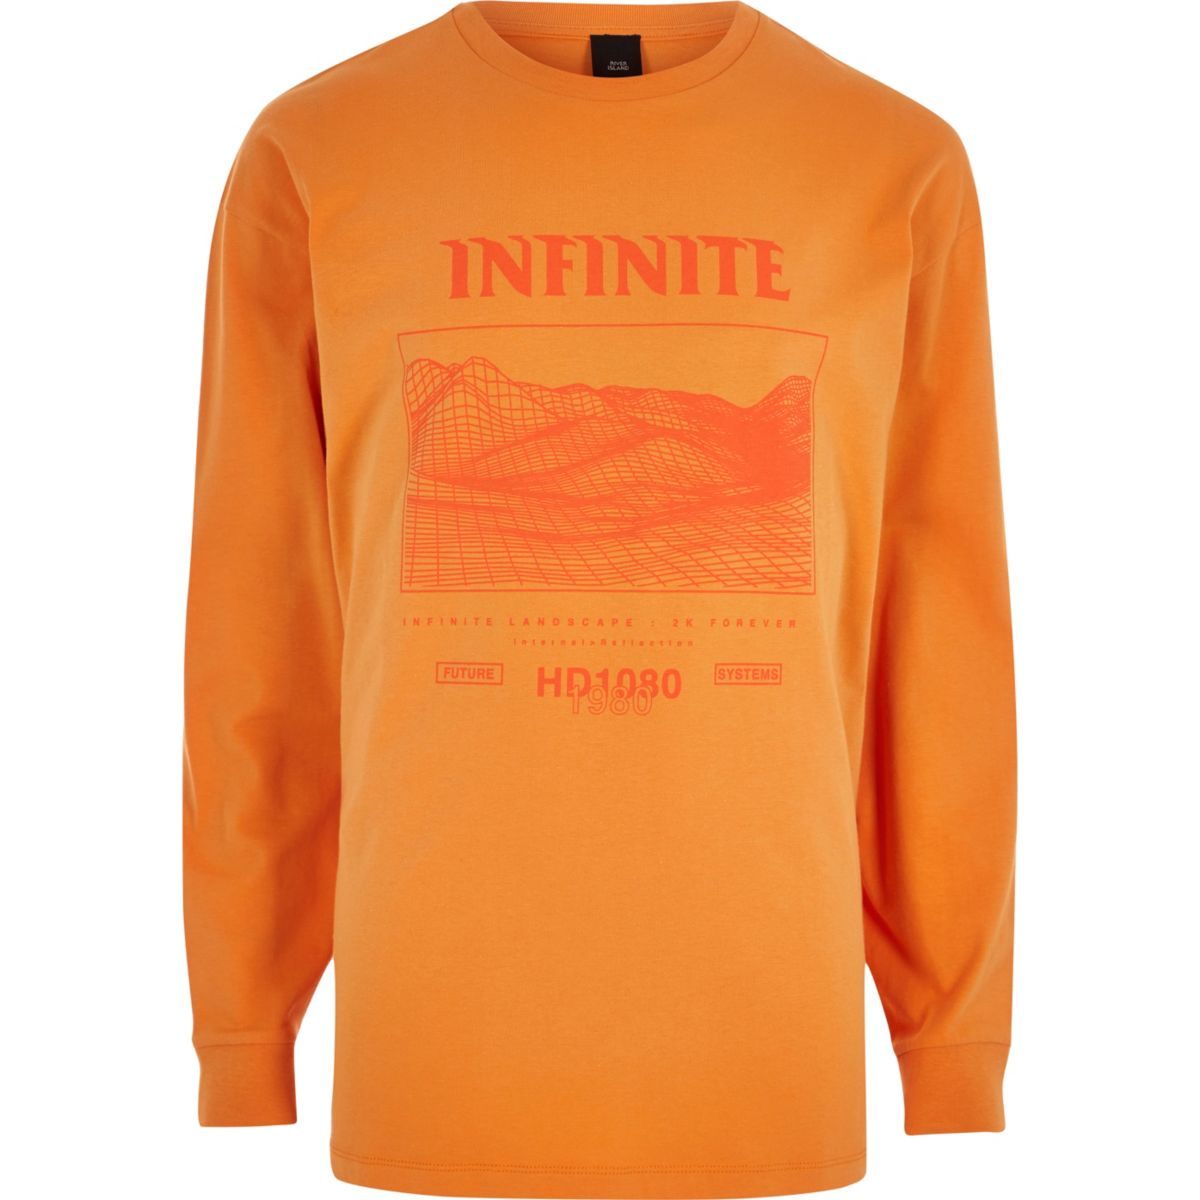 Orange 'infinite' print long sleeve T-shirt